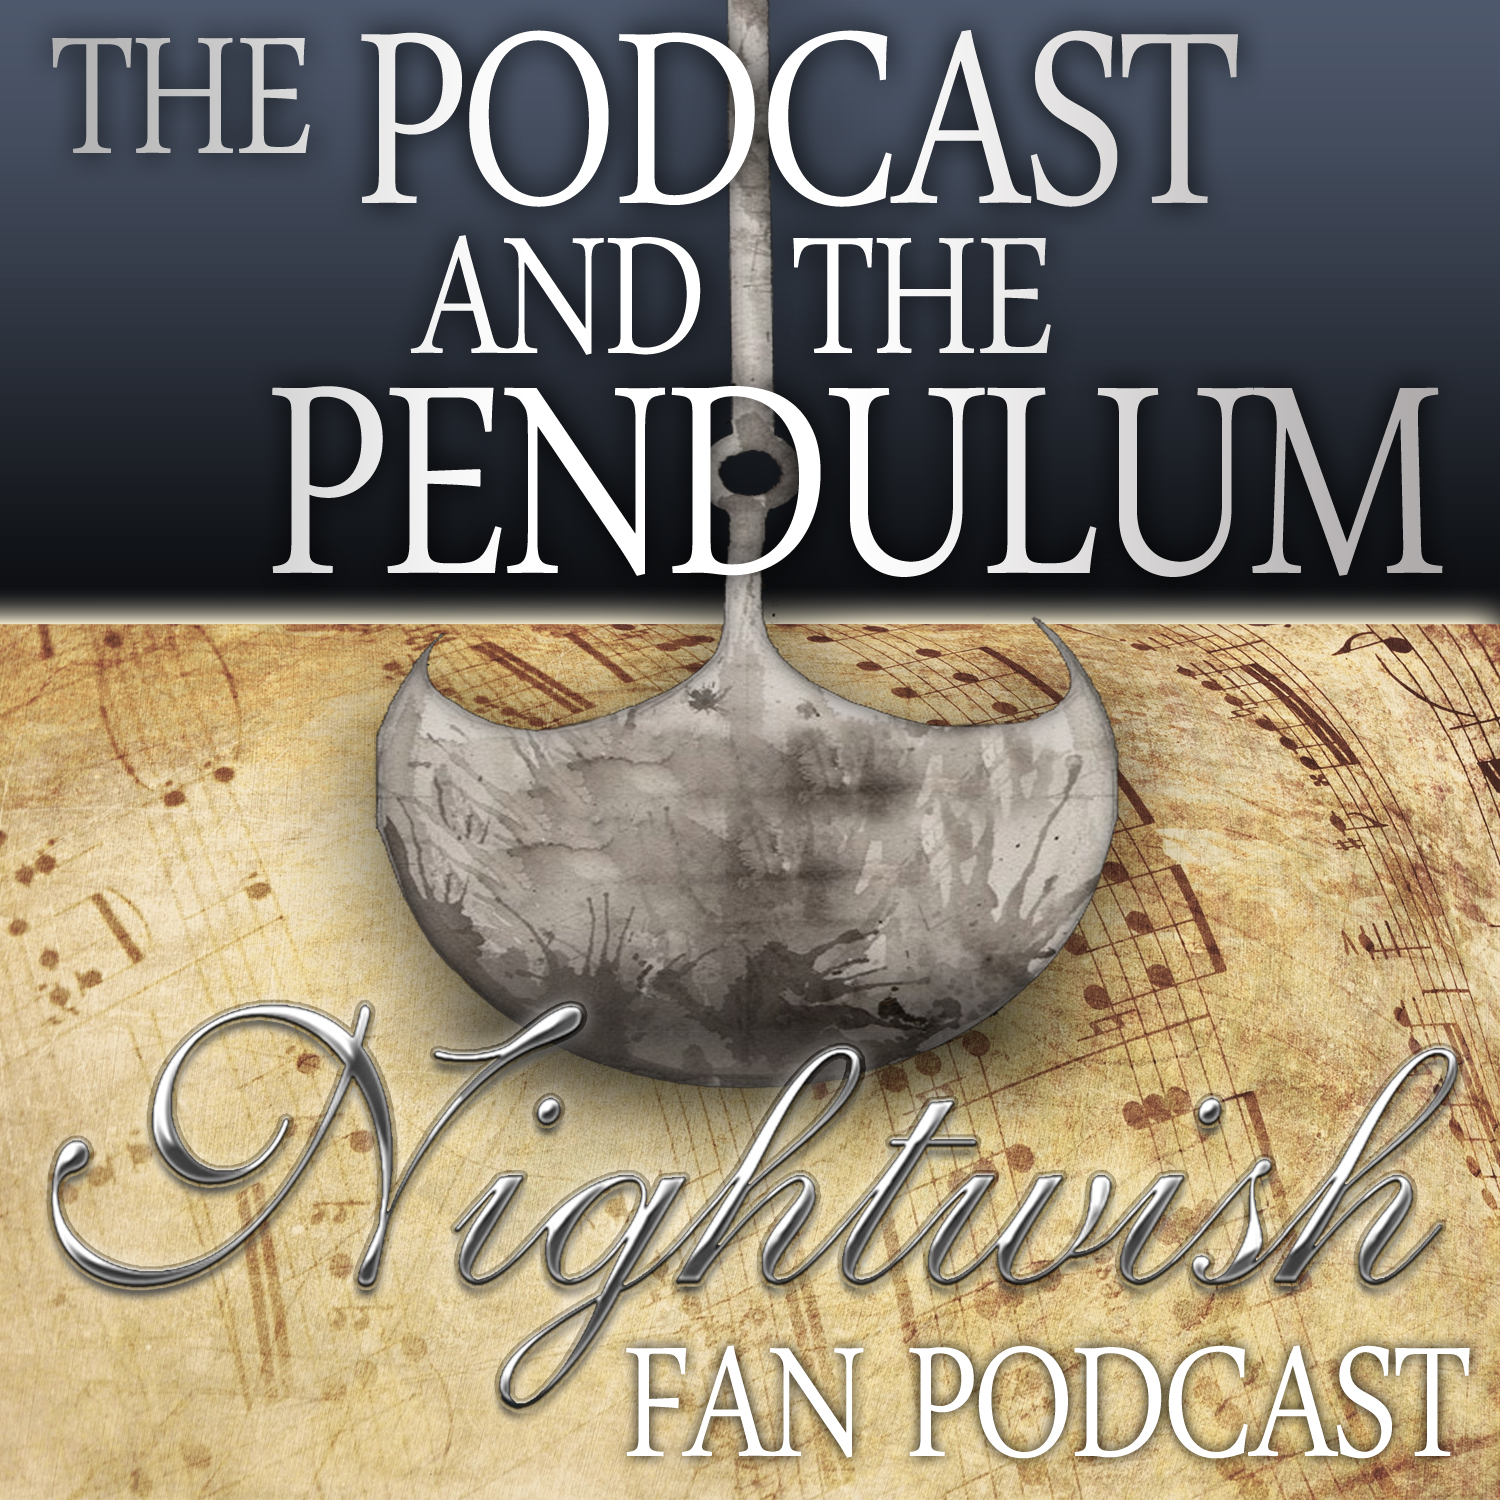 The Podcast and the Pendulum